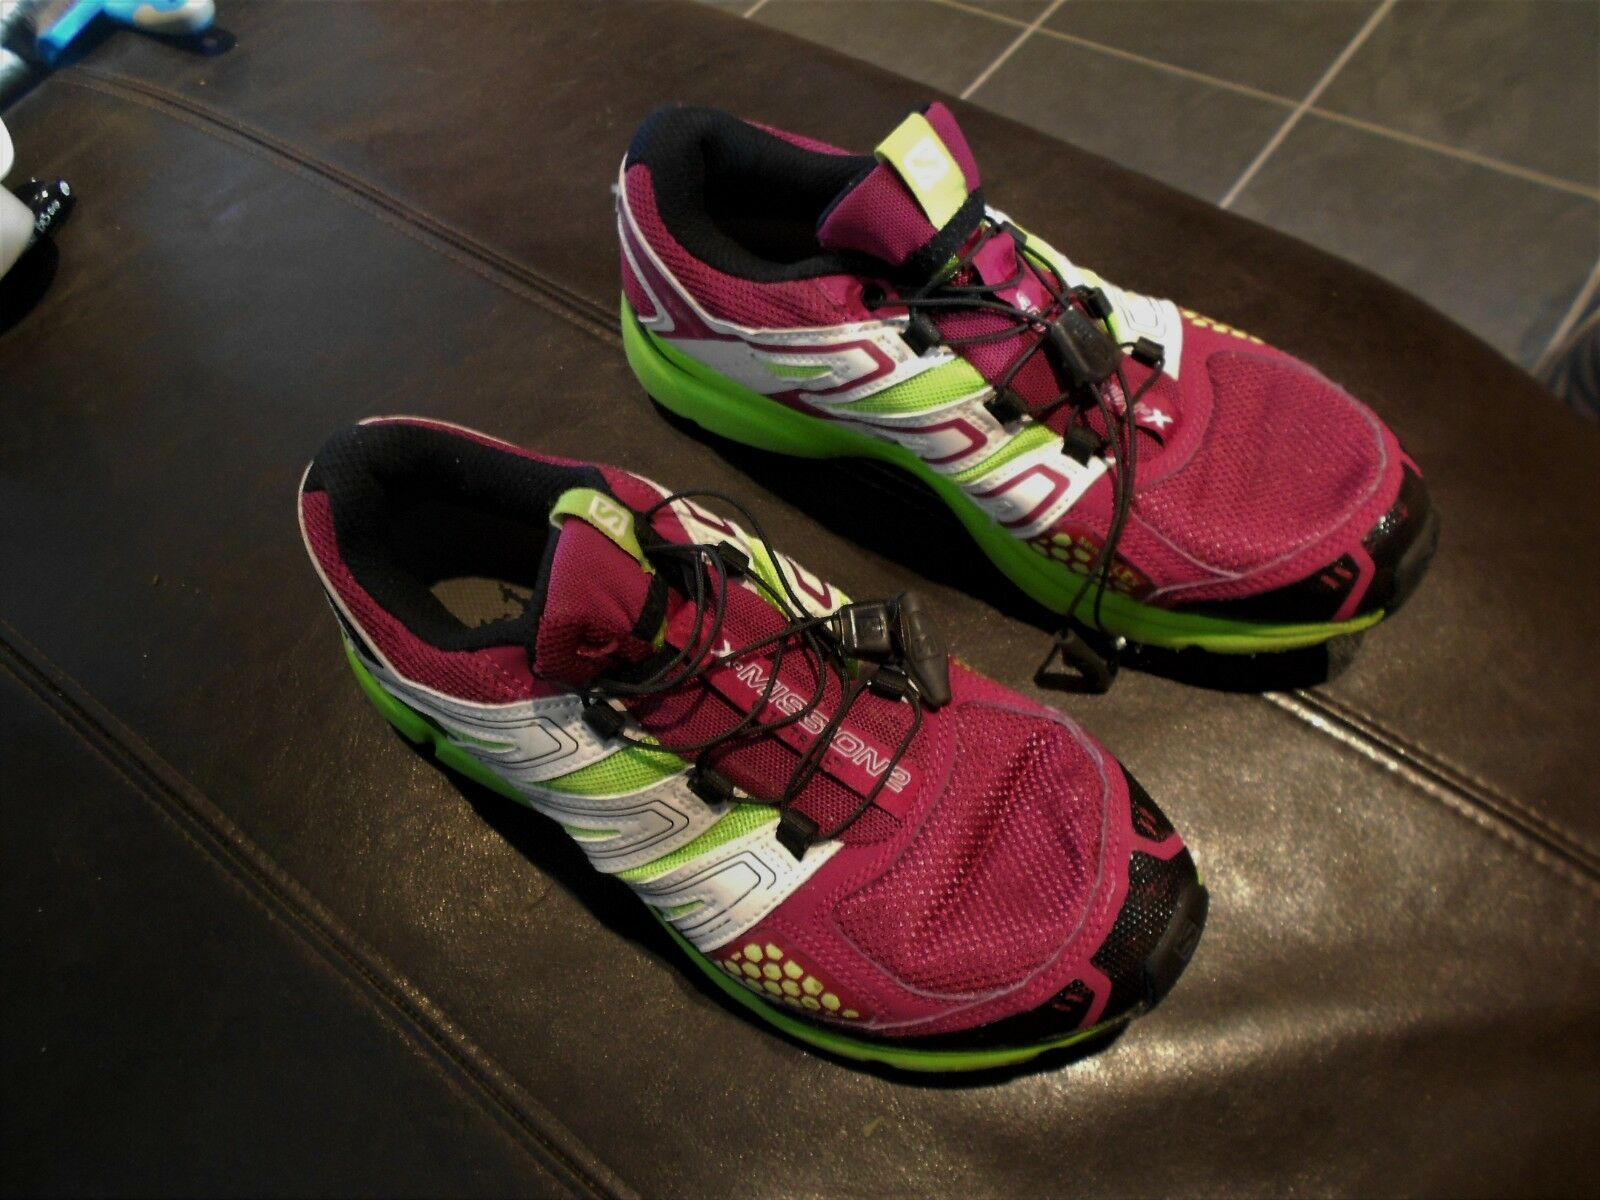 WOMENS  SALOMON X MISSION 2 RUNNING TRAINERS -UK SIZE 7 - IN AN OK CONDITION